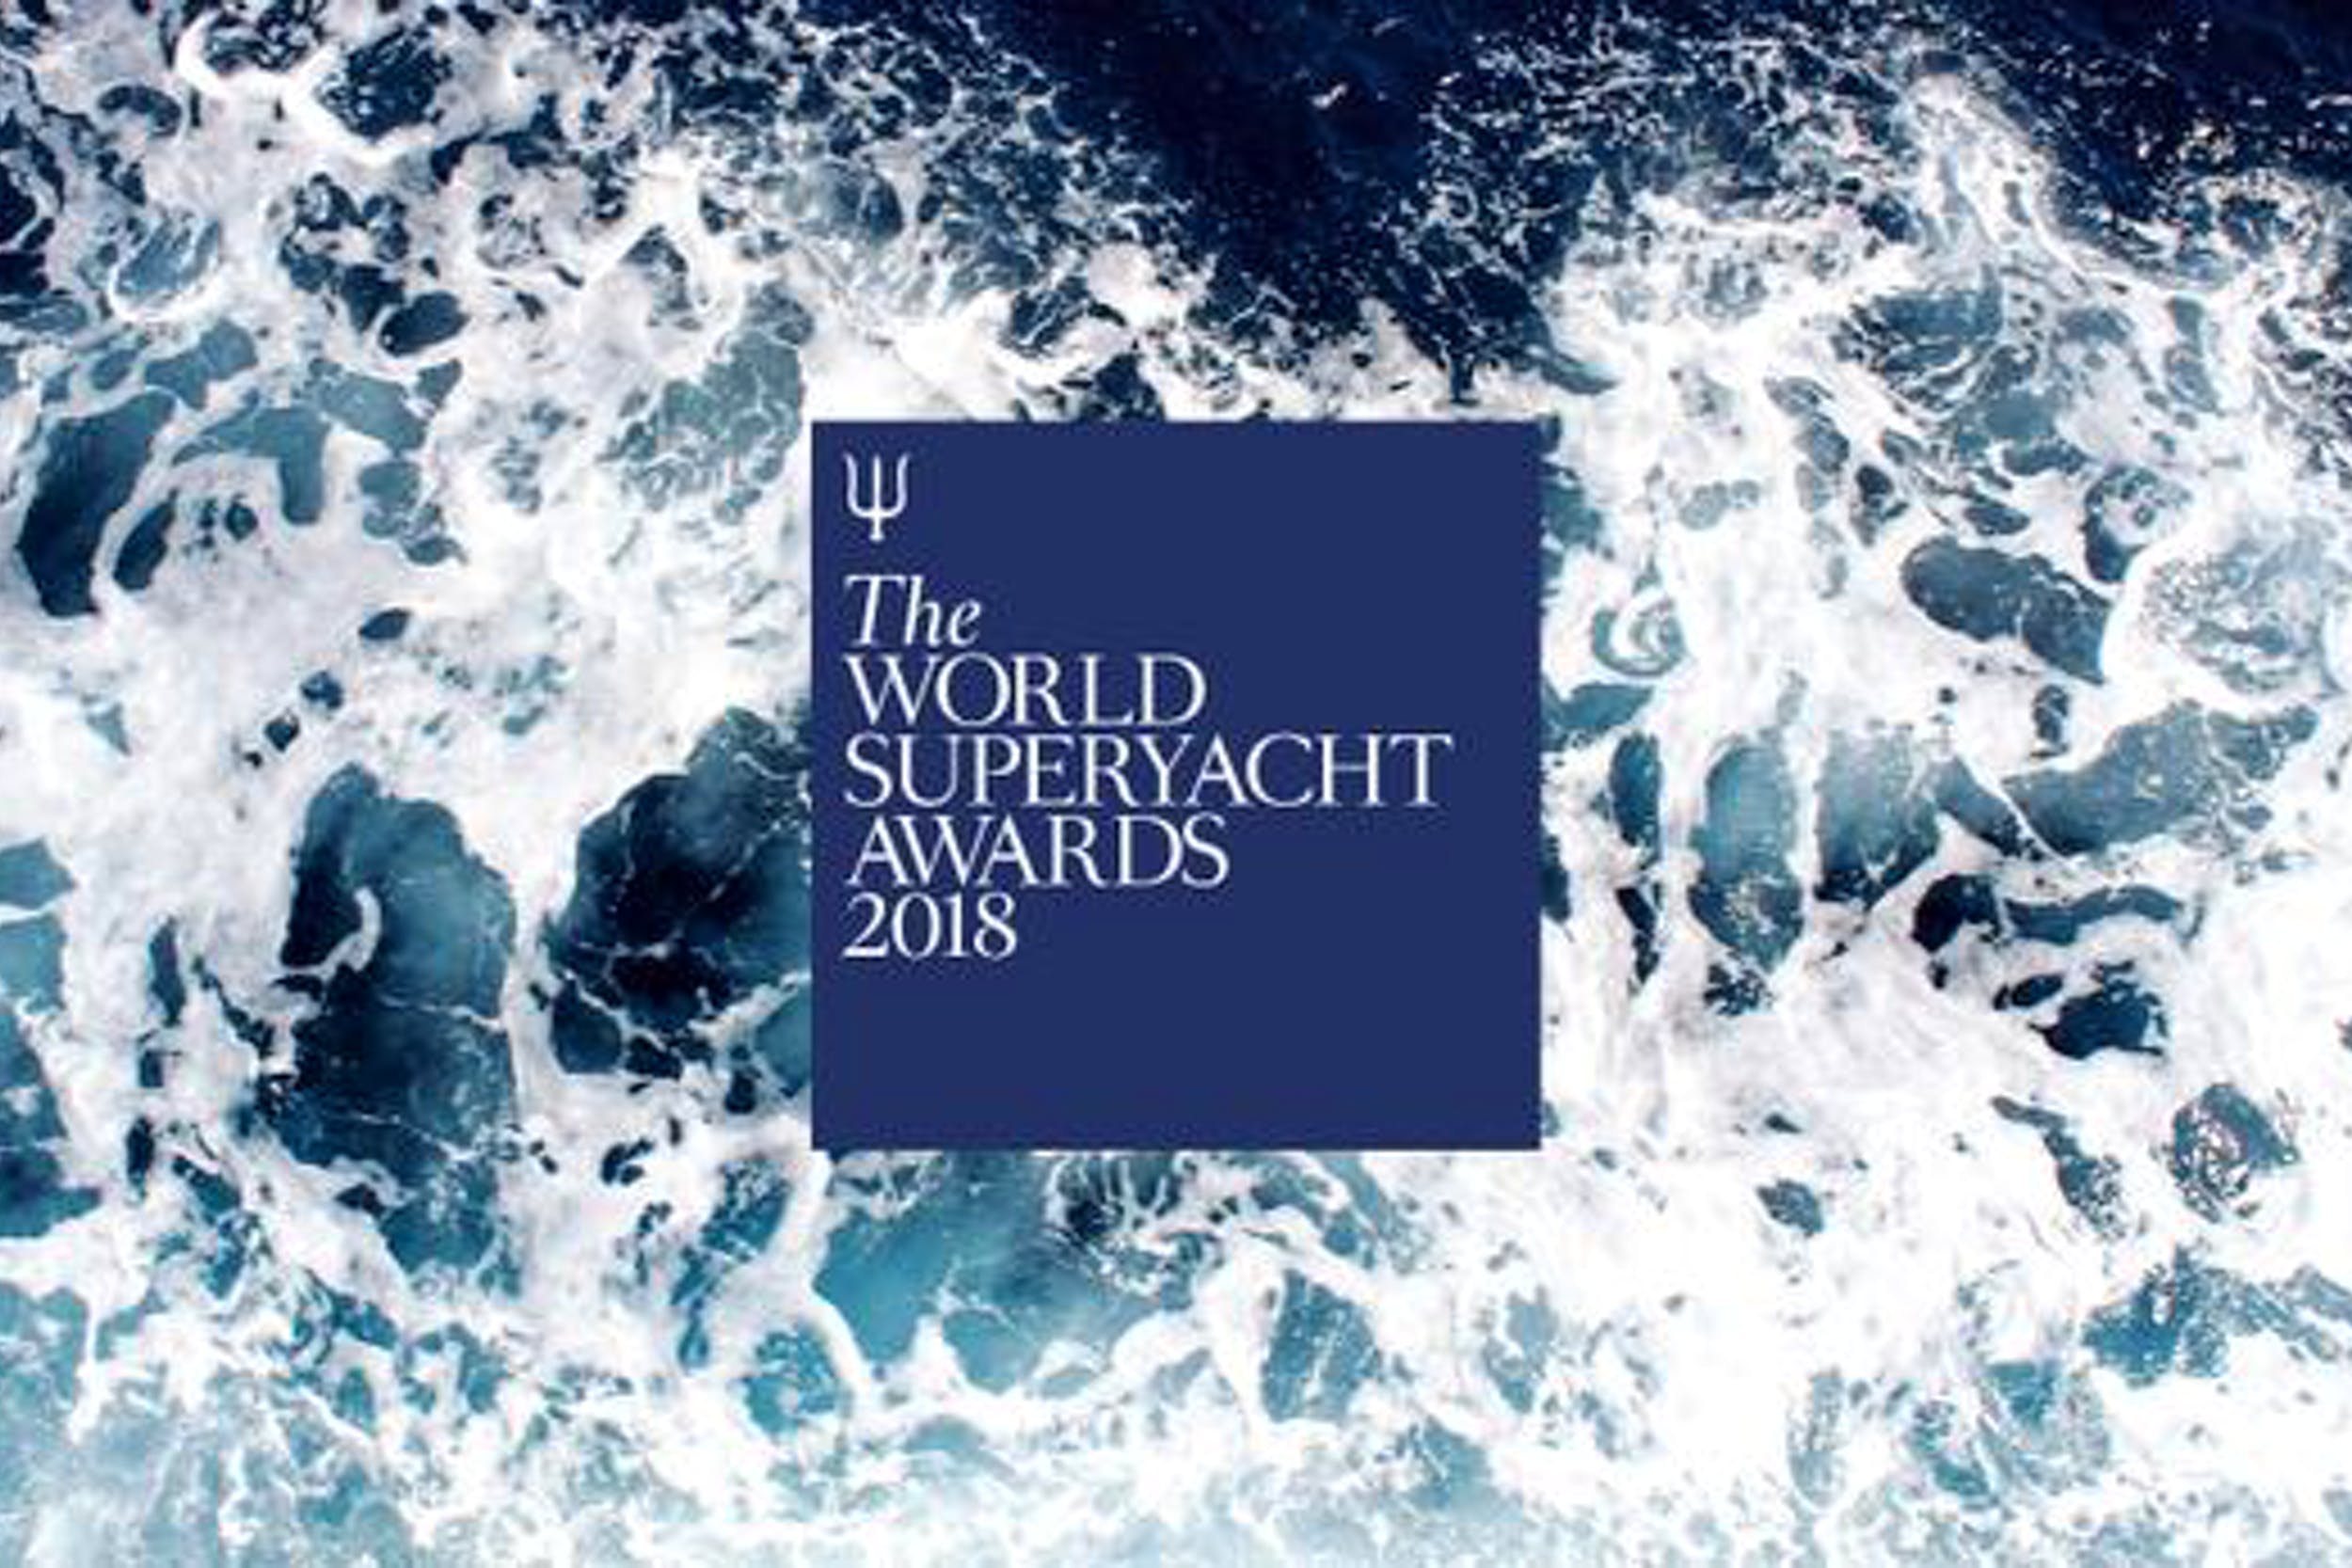 LILI and ELSEA nominees of the World Superyacht Awards 2018